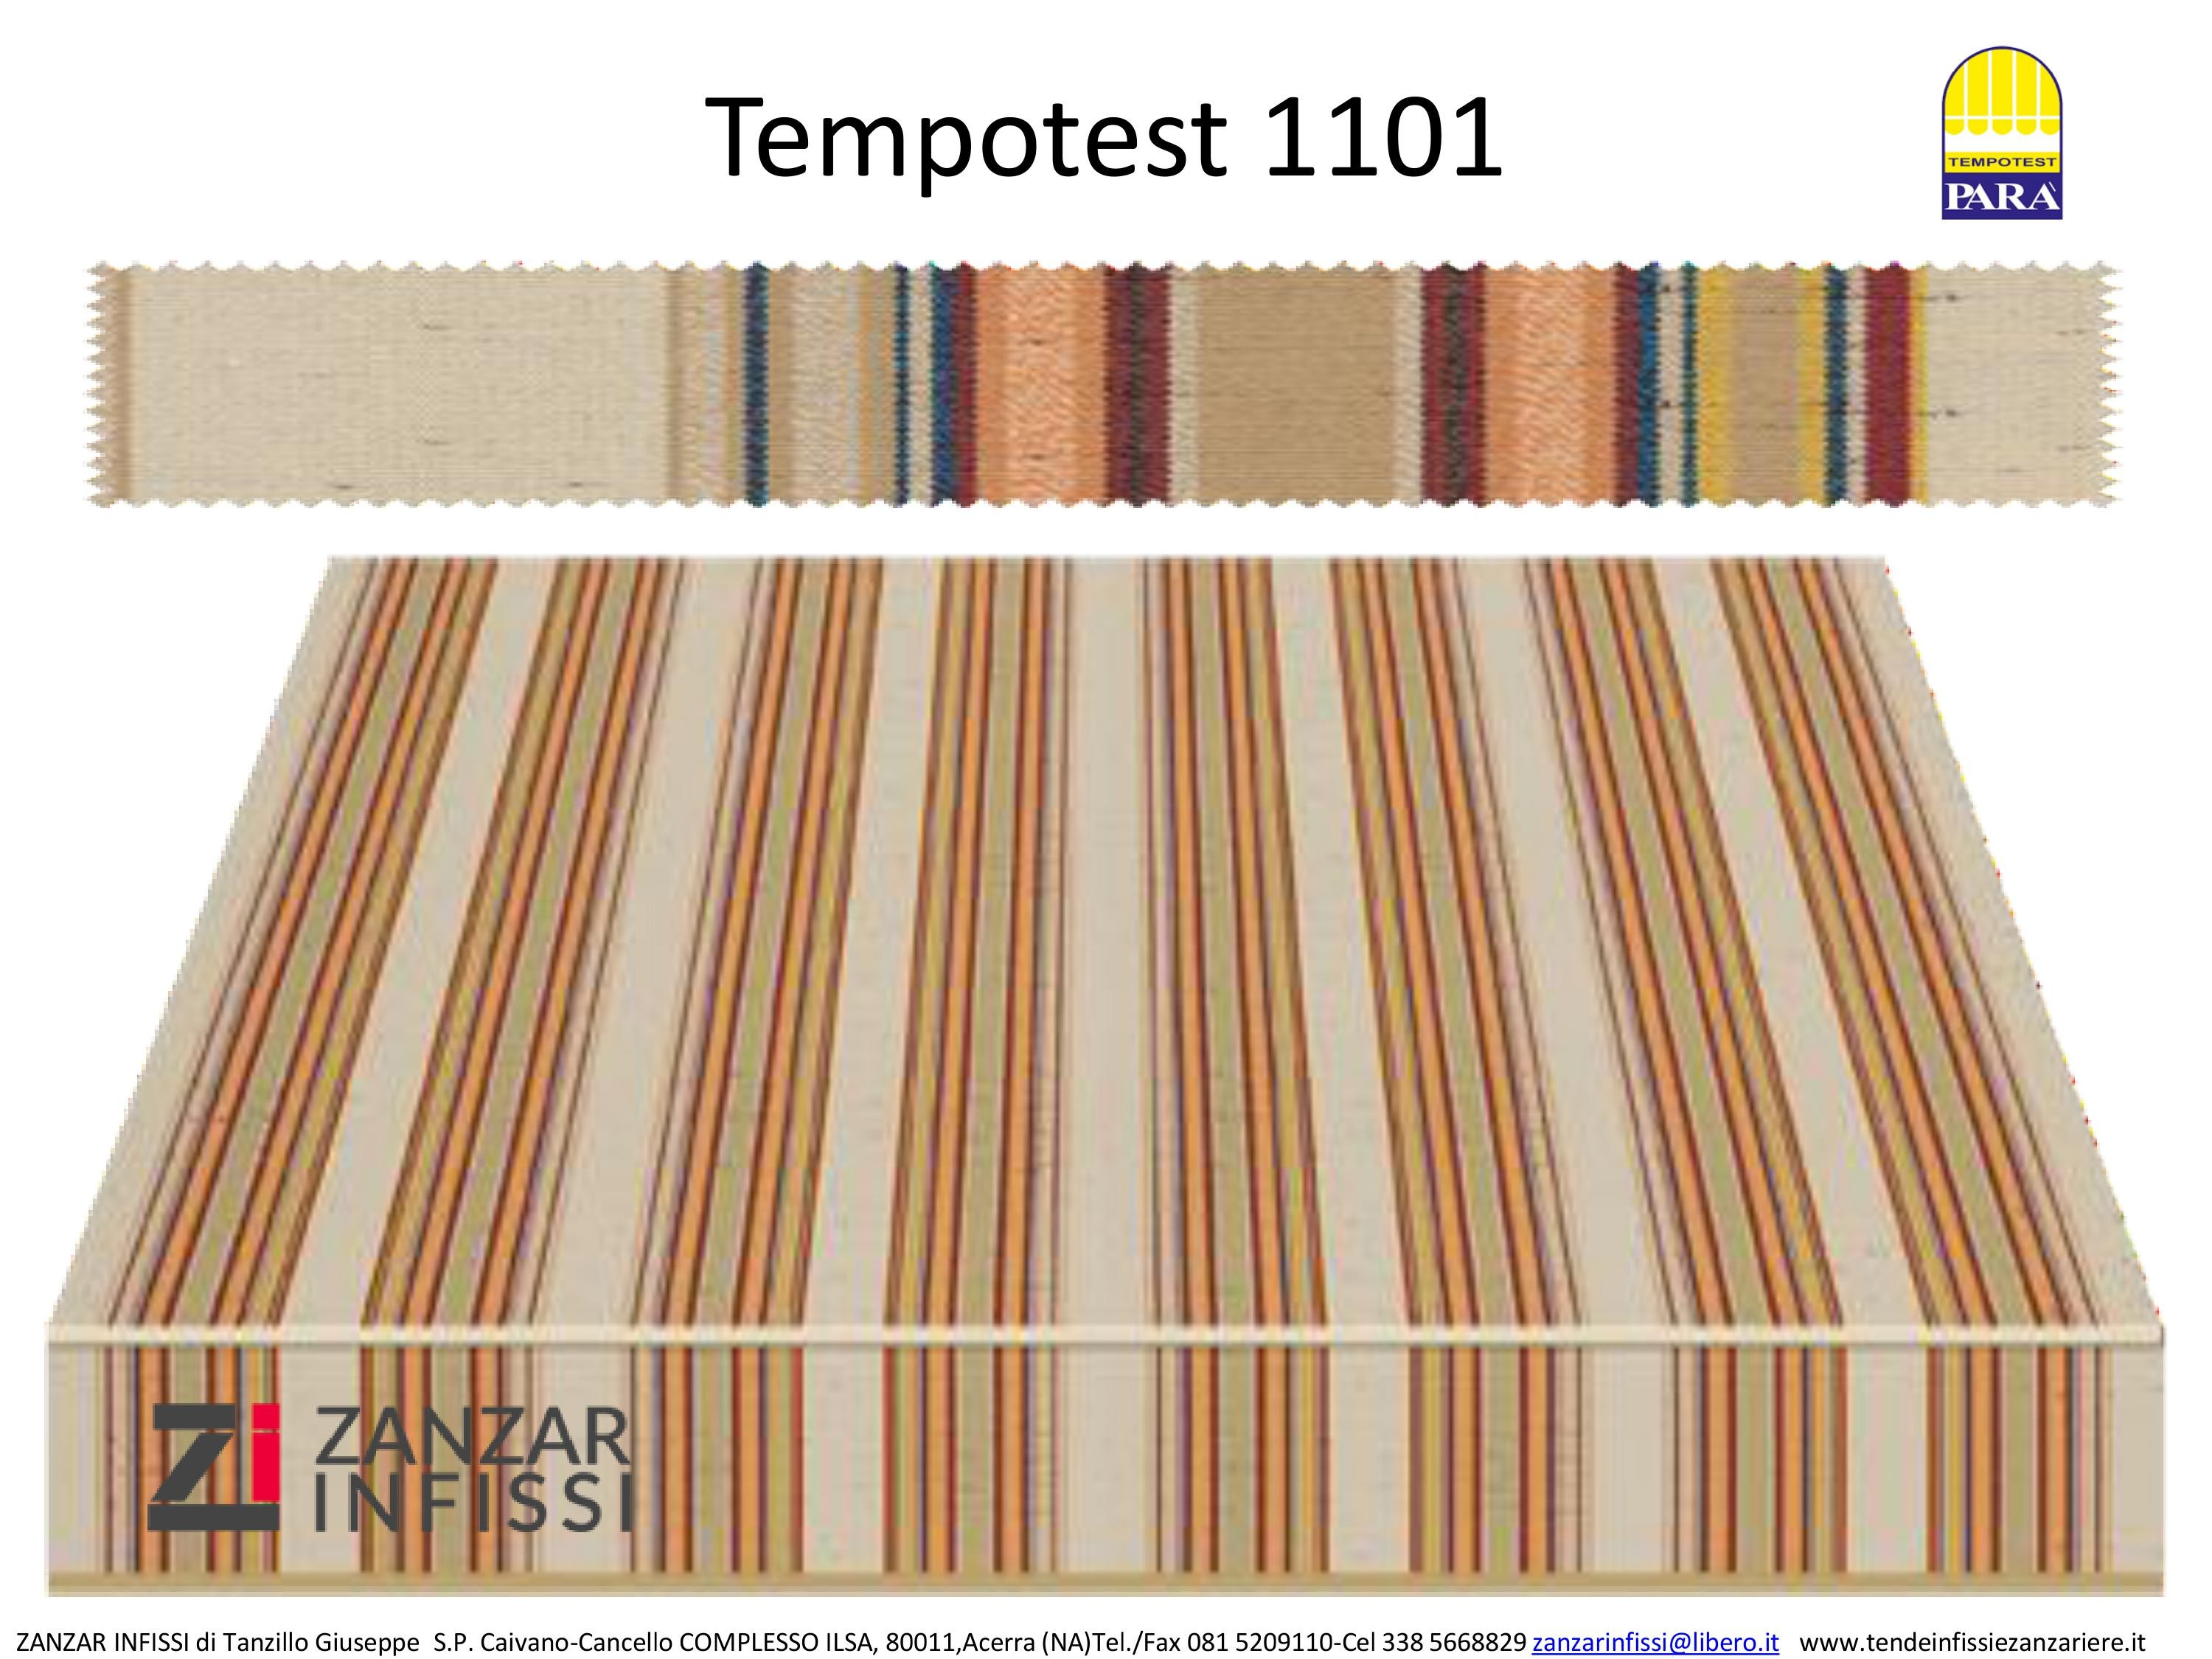 Tempotest 1101